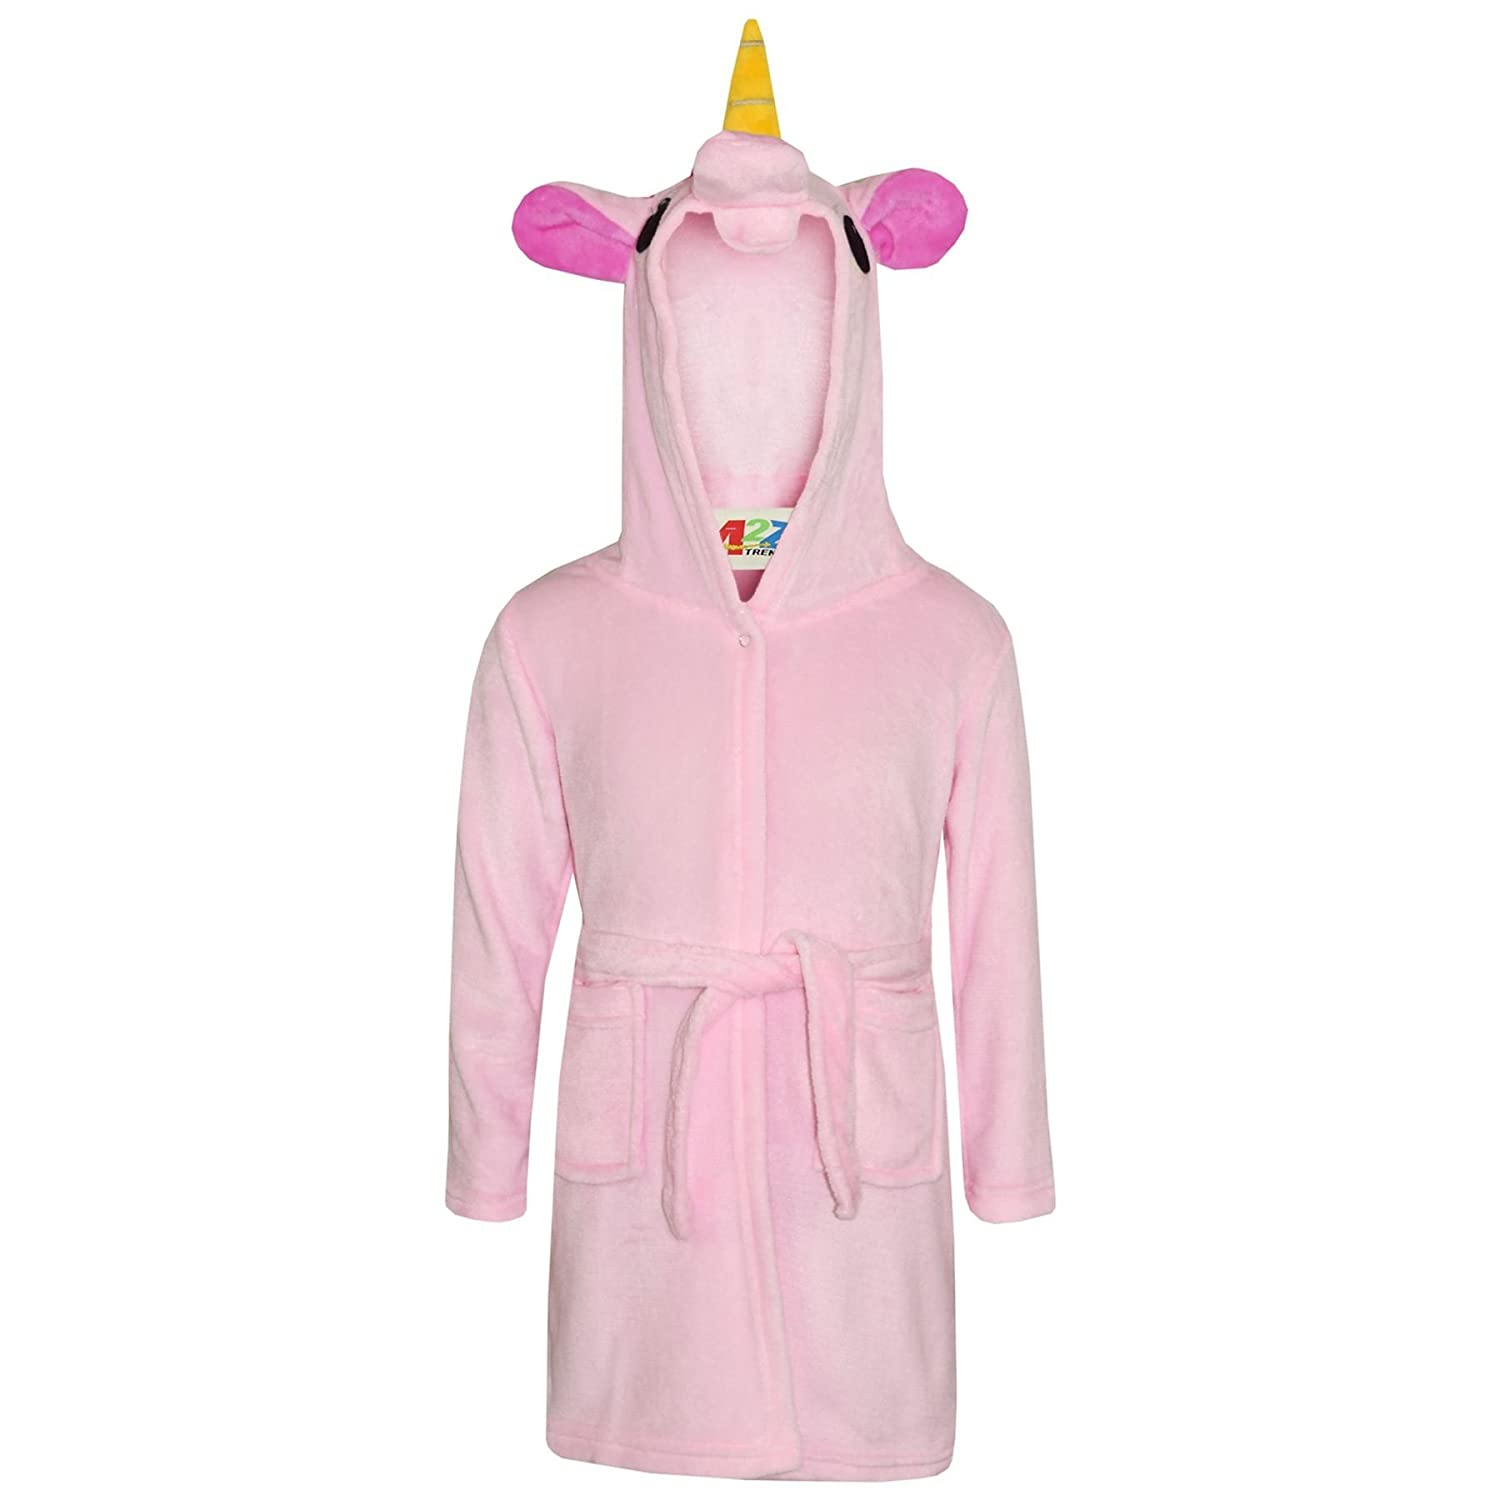 A2Z 4 Kids® Girls Bathrobes Kids 3D Animal Soft Hooded Fleece Unicorn Cosplay Baby Pink Bathrobe Dressing Gown Night Lounge Wear Age 5 6 7 8 9 10 11 12 13 Years